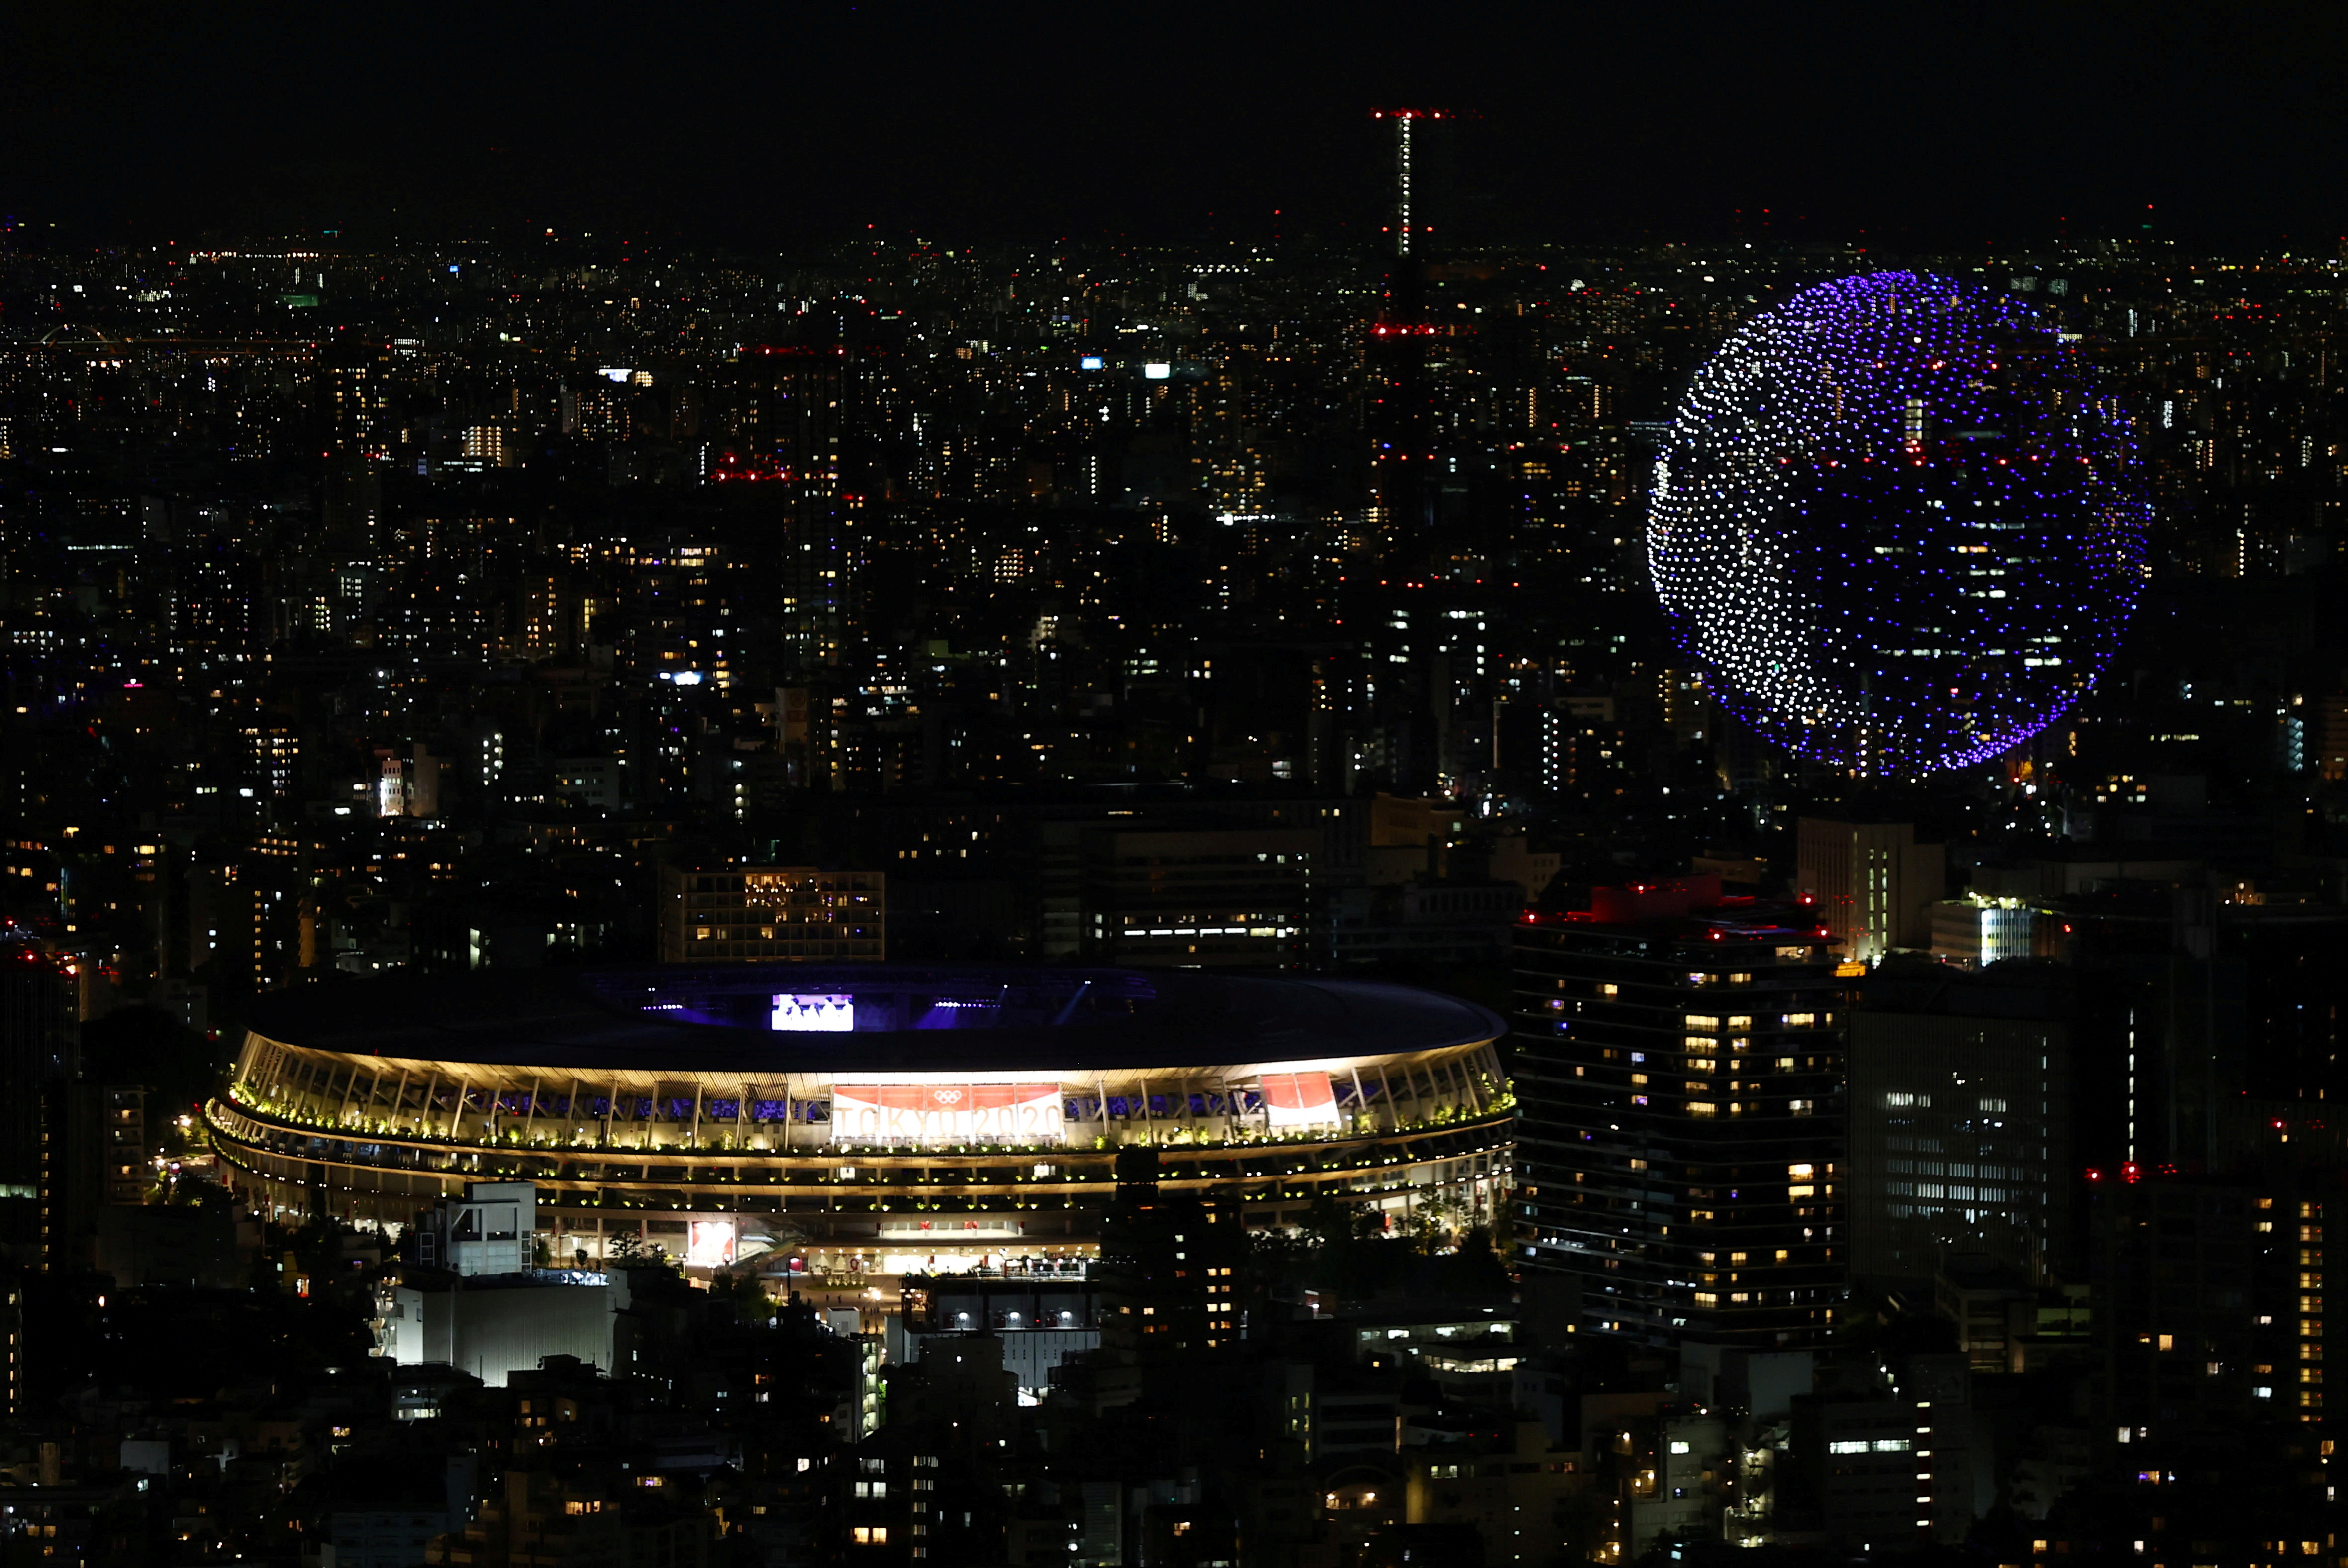 The Tokyo 2020 Olympics Opening Ceremony - Olympic Stadium, Tokyo, Japan - July 23, 2021. Drones form a shape of the world during the opening ceremony, seen above the Olympic Stadium REUTERS/Kim Kyung-Hoon/File Photo